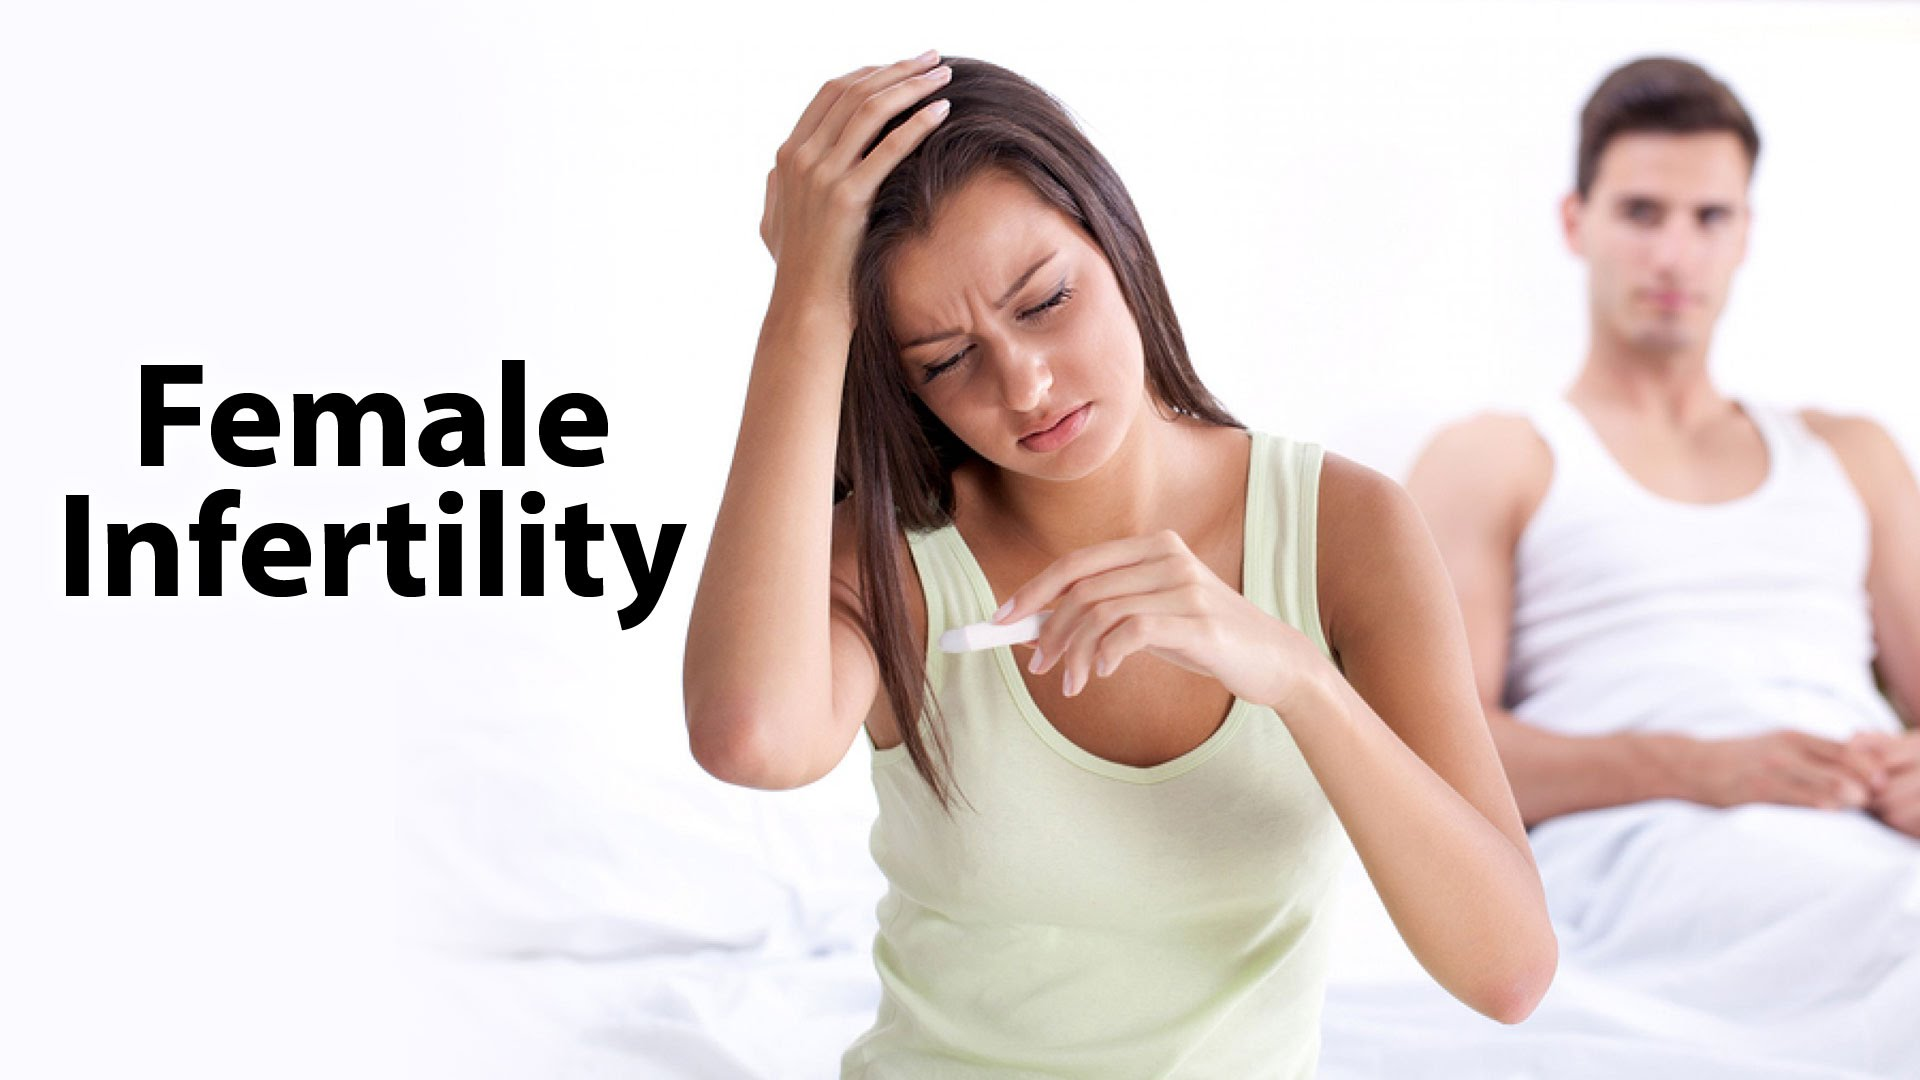 Female Infertility Treatment In Hyderabad -CAUSES OF FEMALE INFERTILITY -AGE